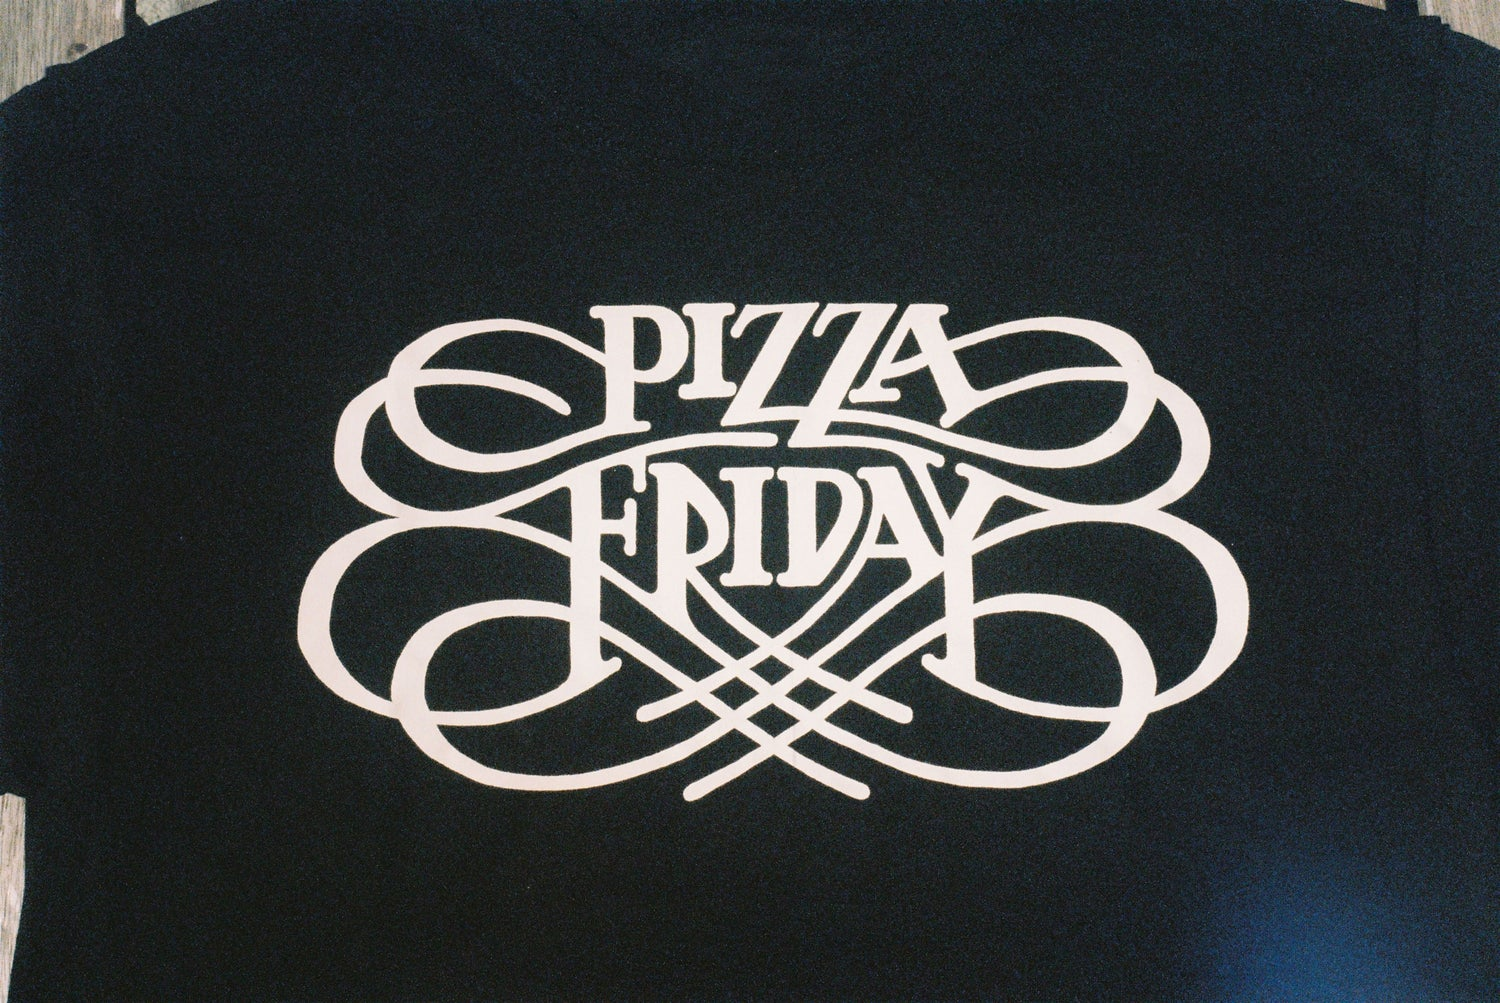 Image of Pizza Friday Team Uniform Tee